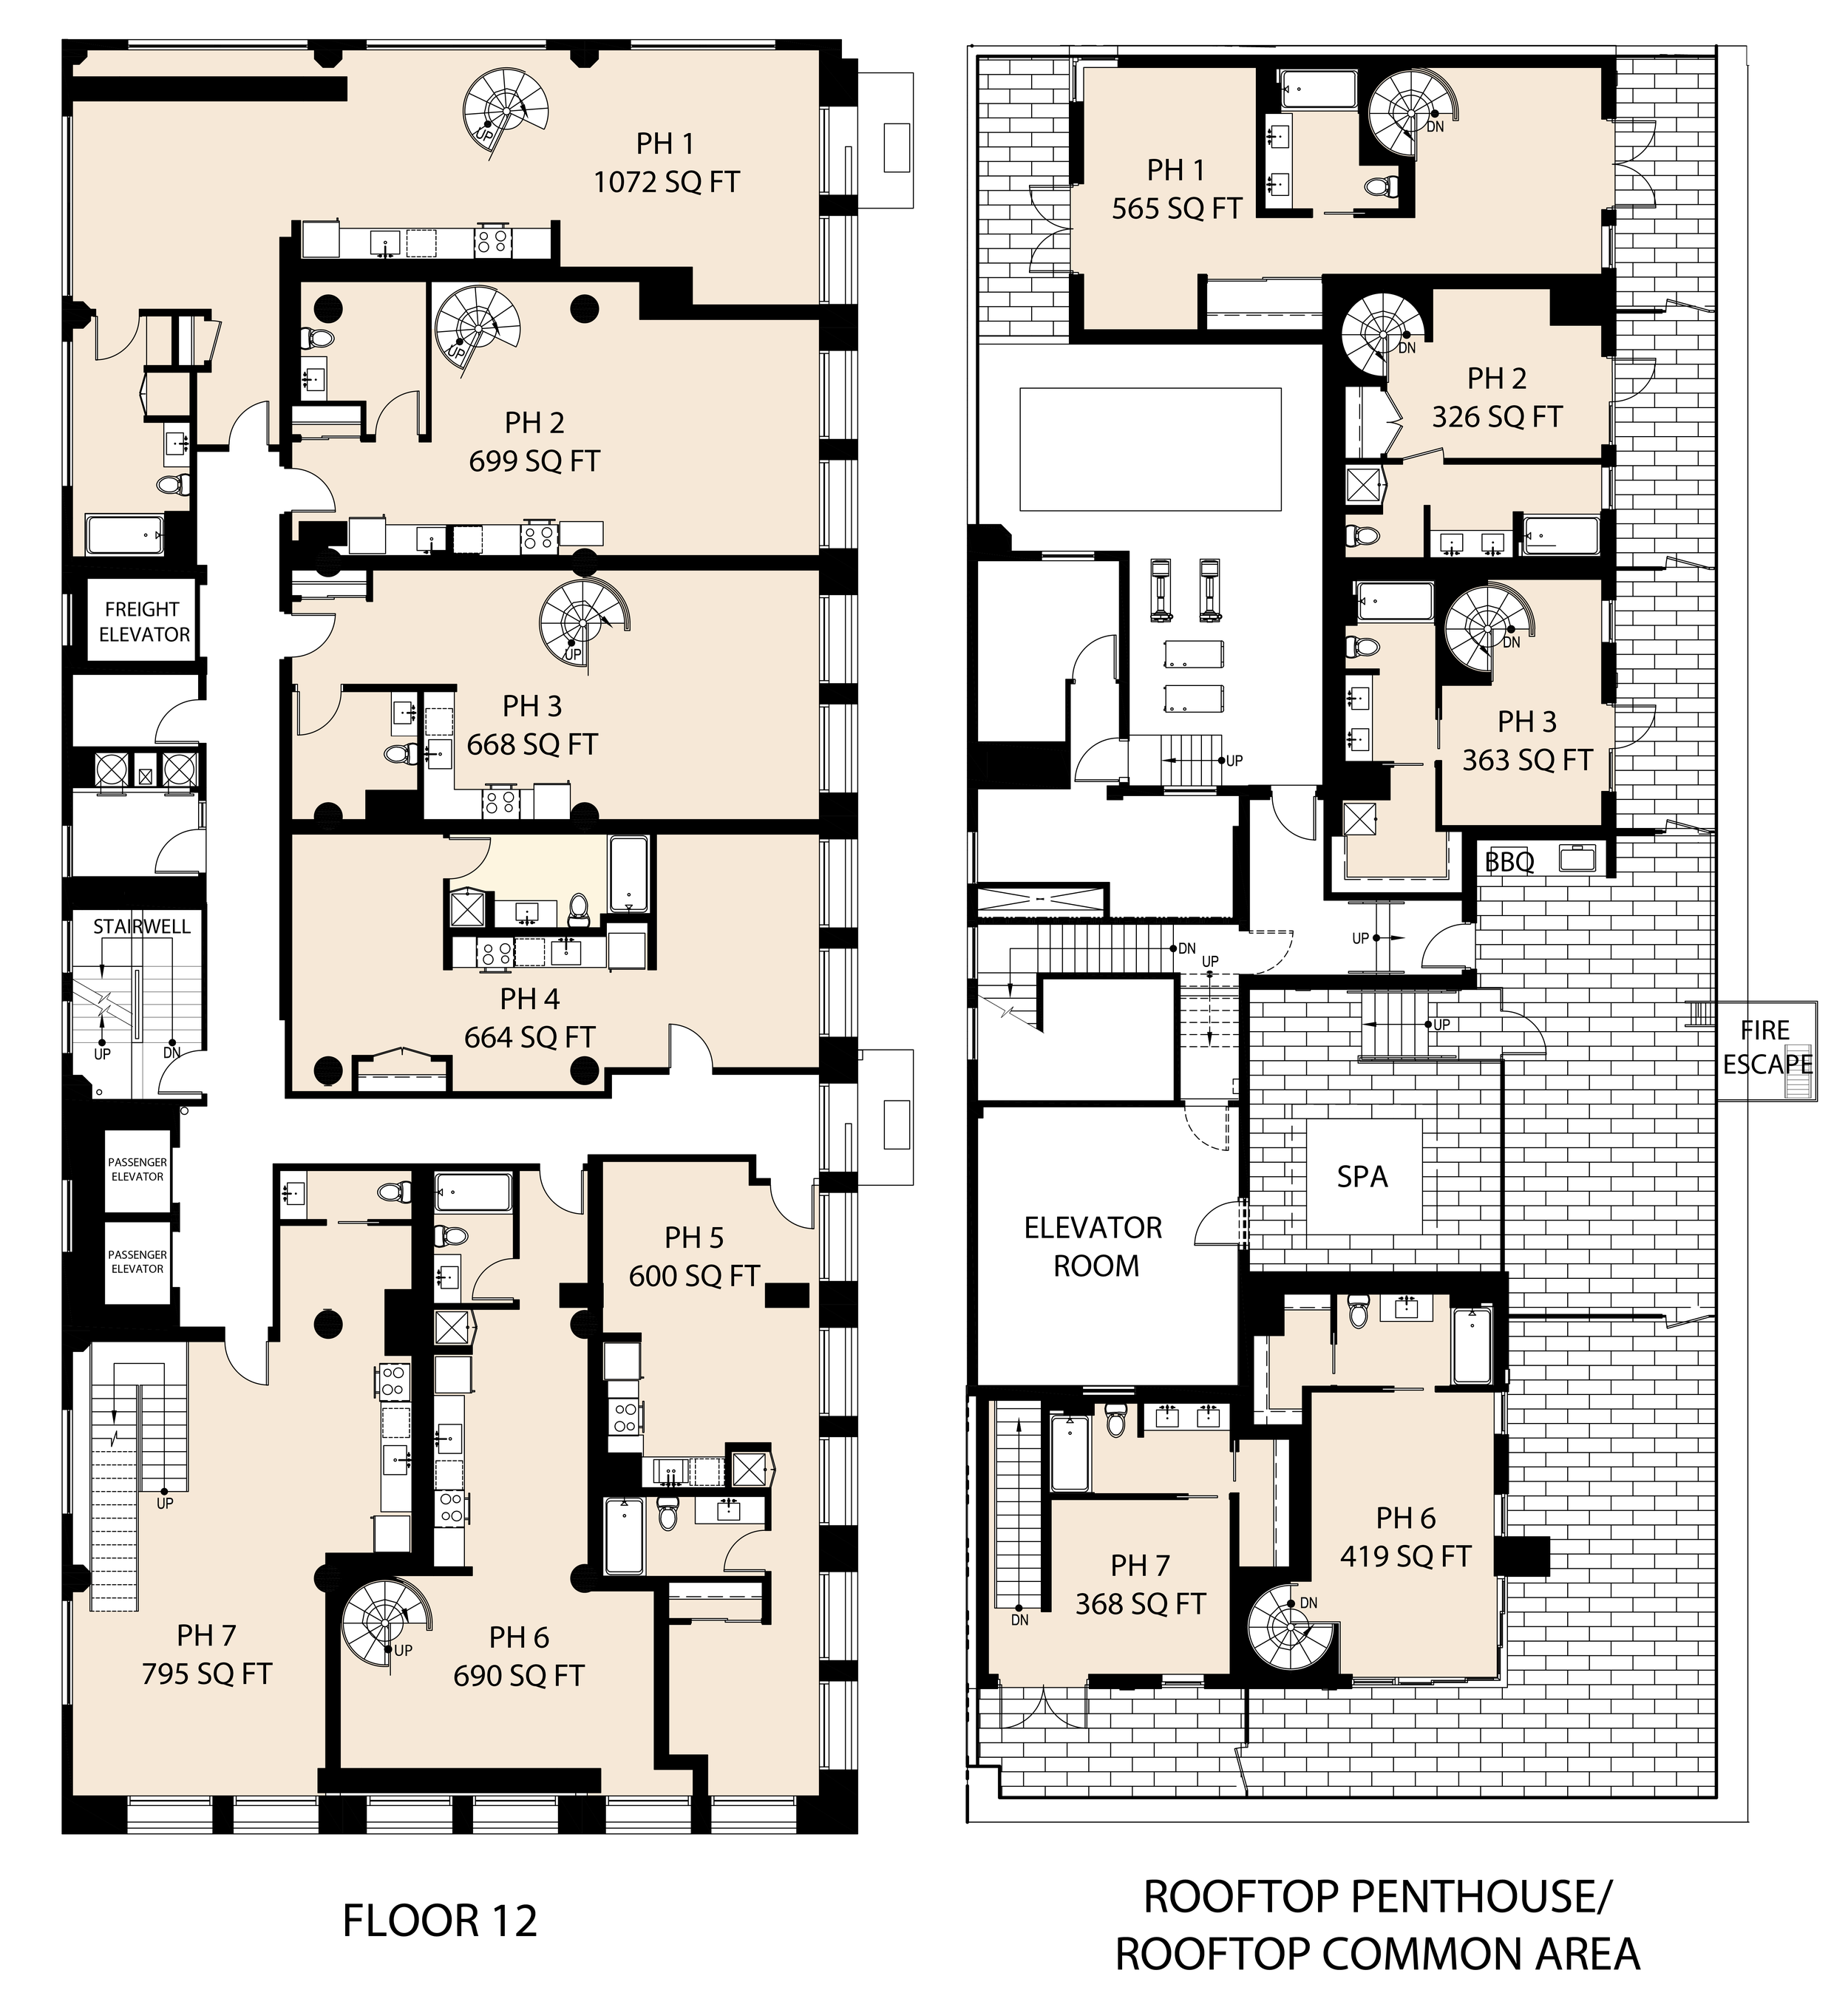 Floor Plans 8th Street Project 12th story penthouse